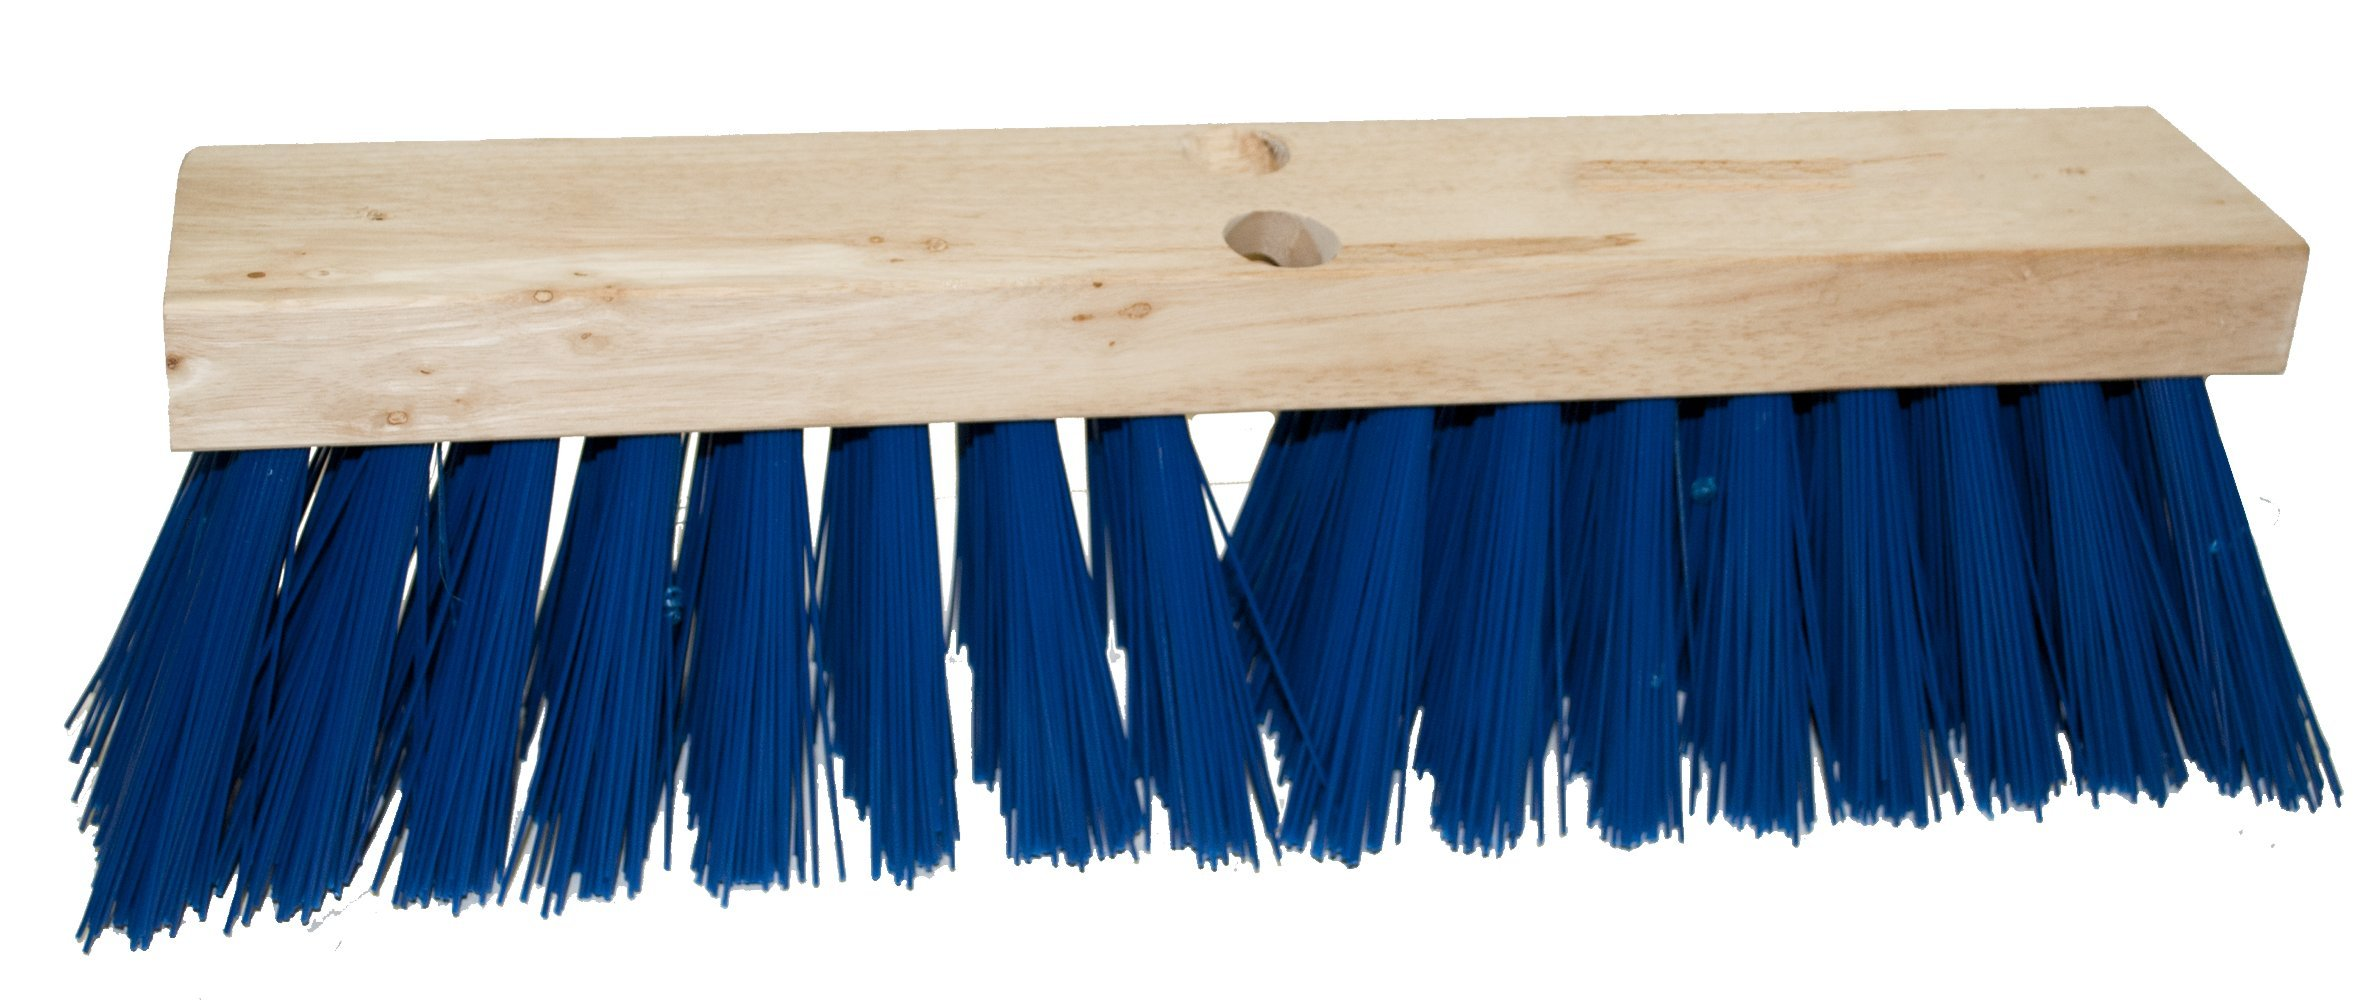 Magnolia Brush 1324-B Heavy-Gauge Street Broom, Polypropylene Bristles, 4-1/4'' Trim, 24'' Length, Blue (Case of 6)